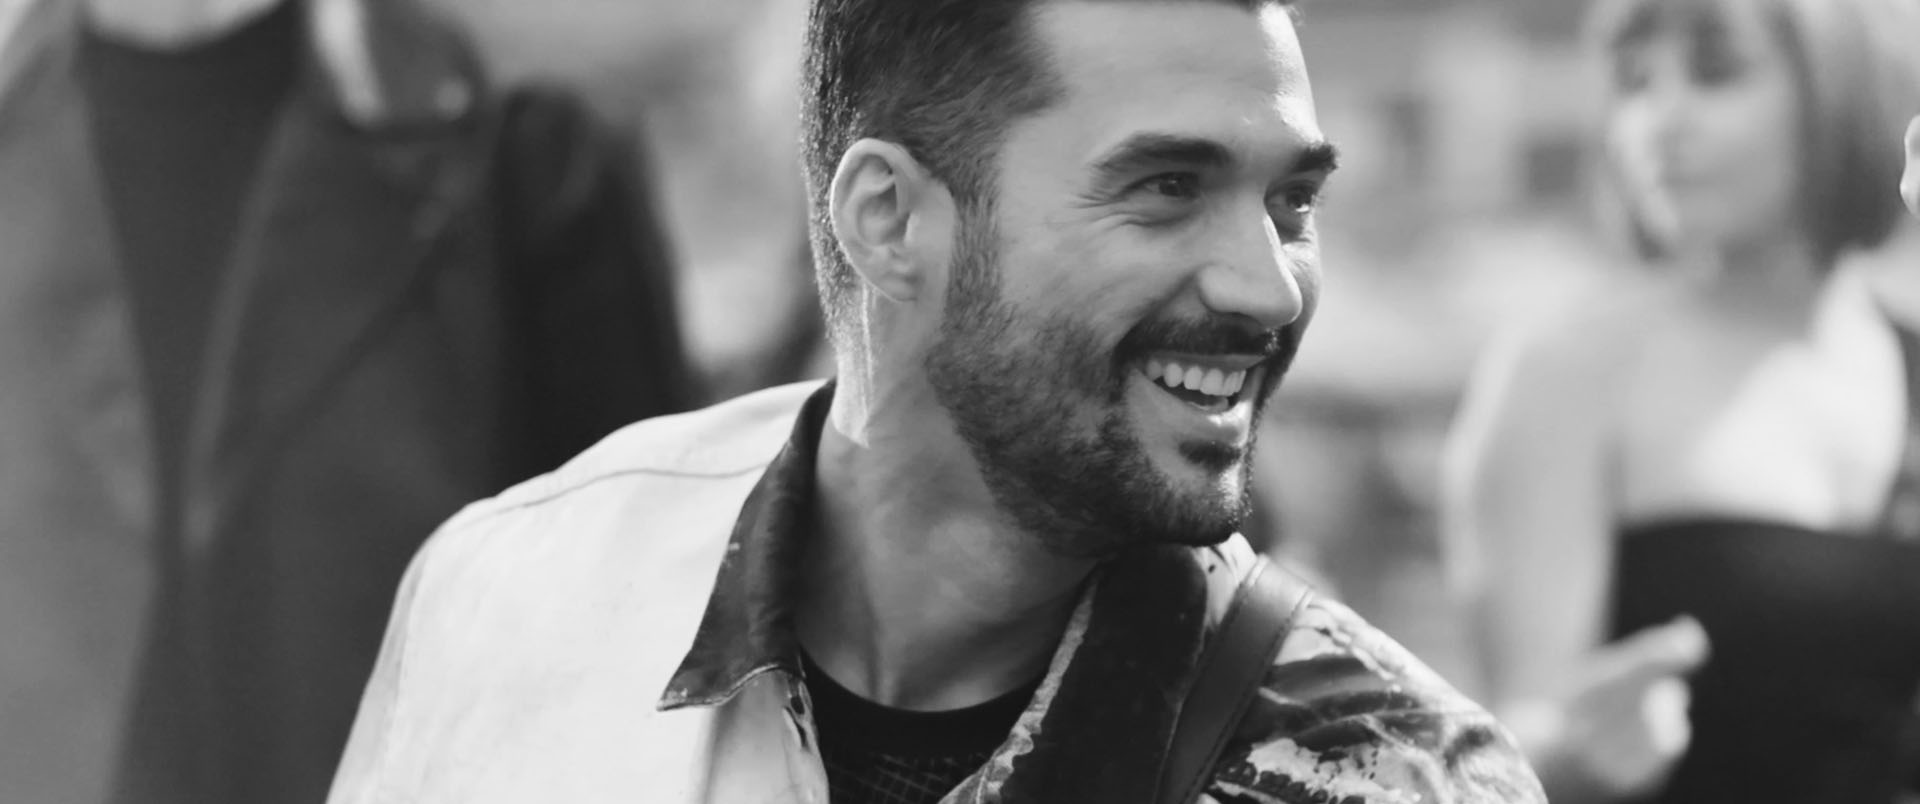 FLORENT MOTHE copie